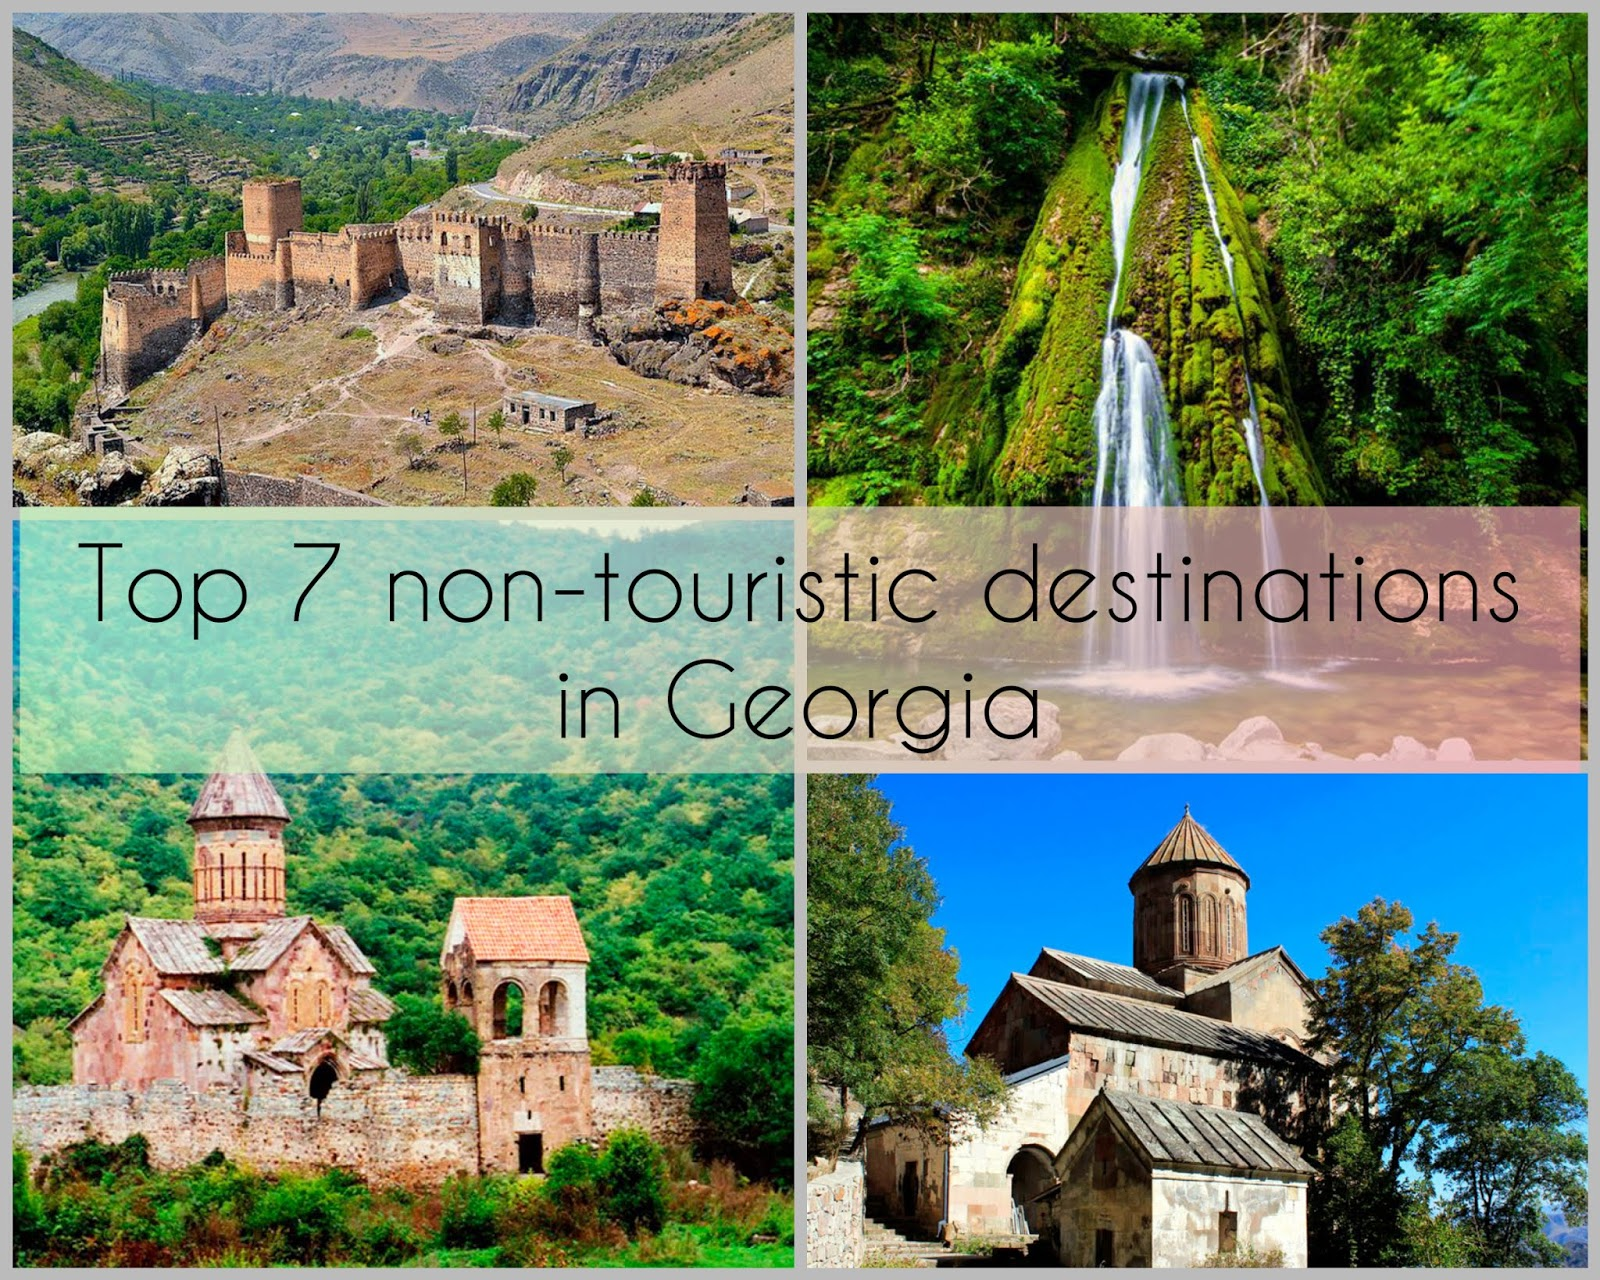 Non-touristic destination in Georgia